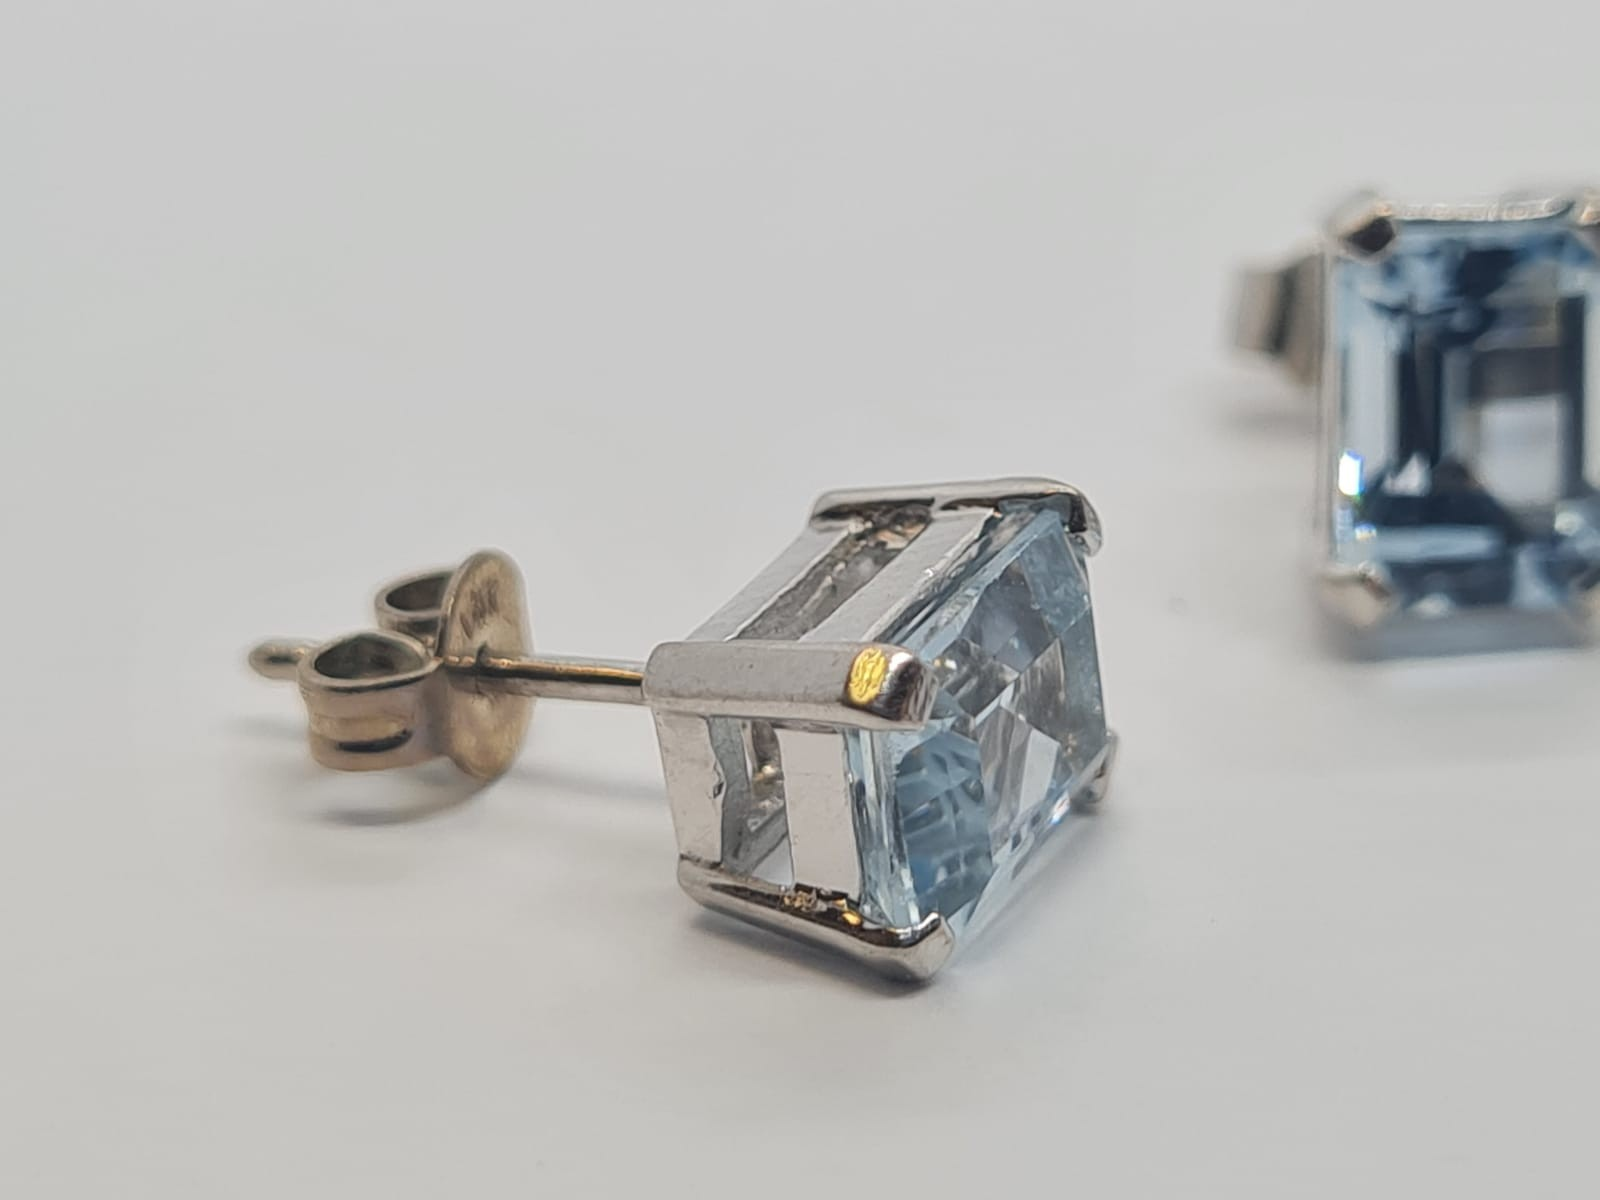 Pair of aquamarine stud earrings set in 18k white gold, weight 3.3g - Image 4 of 4